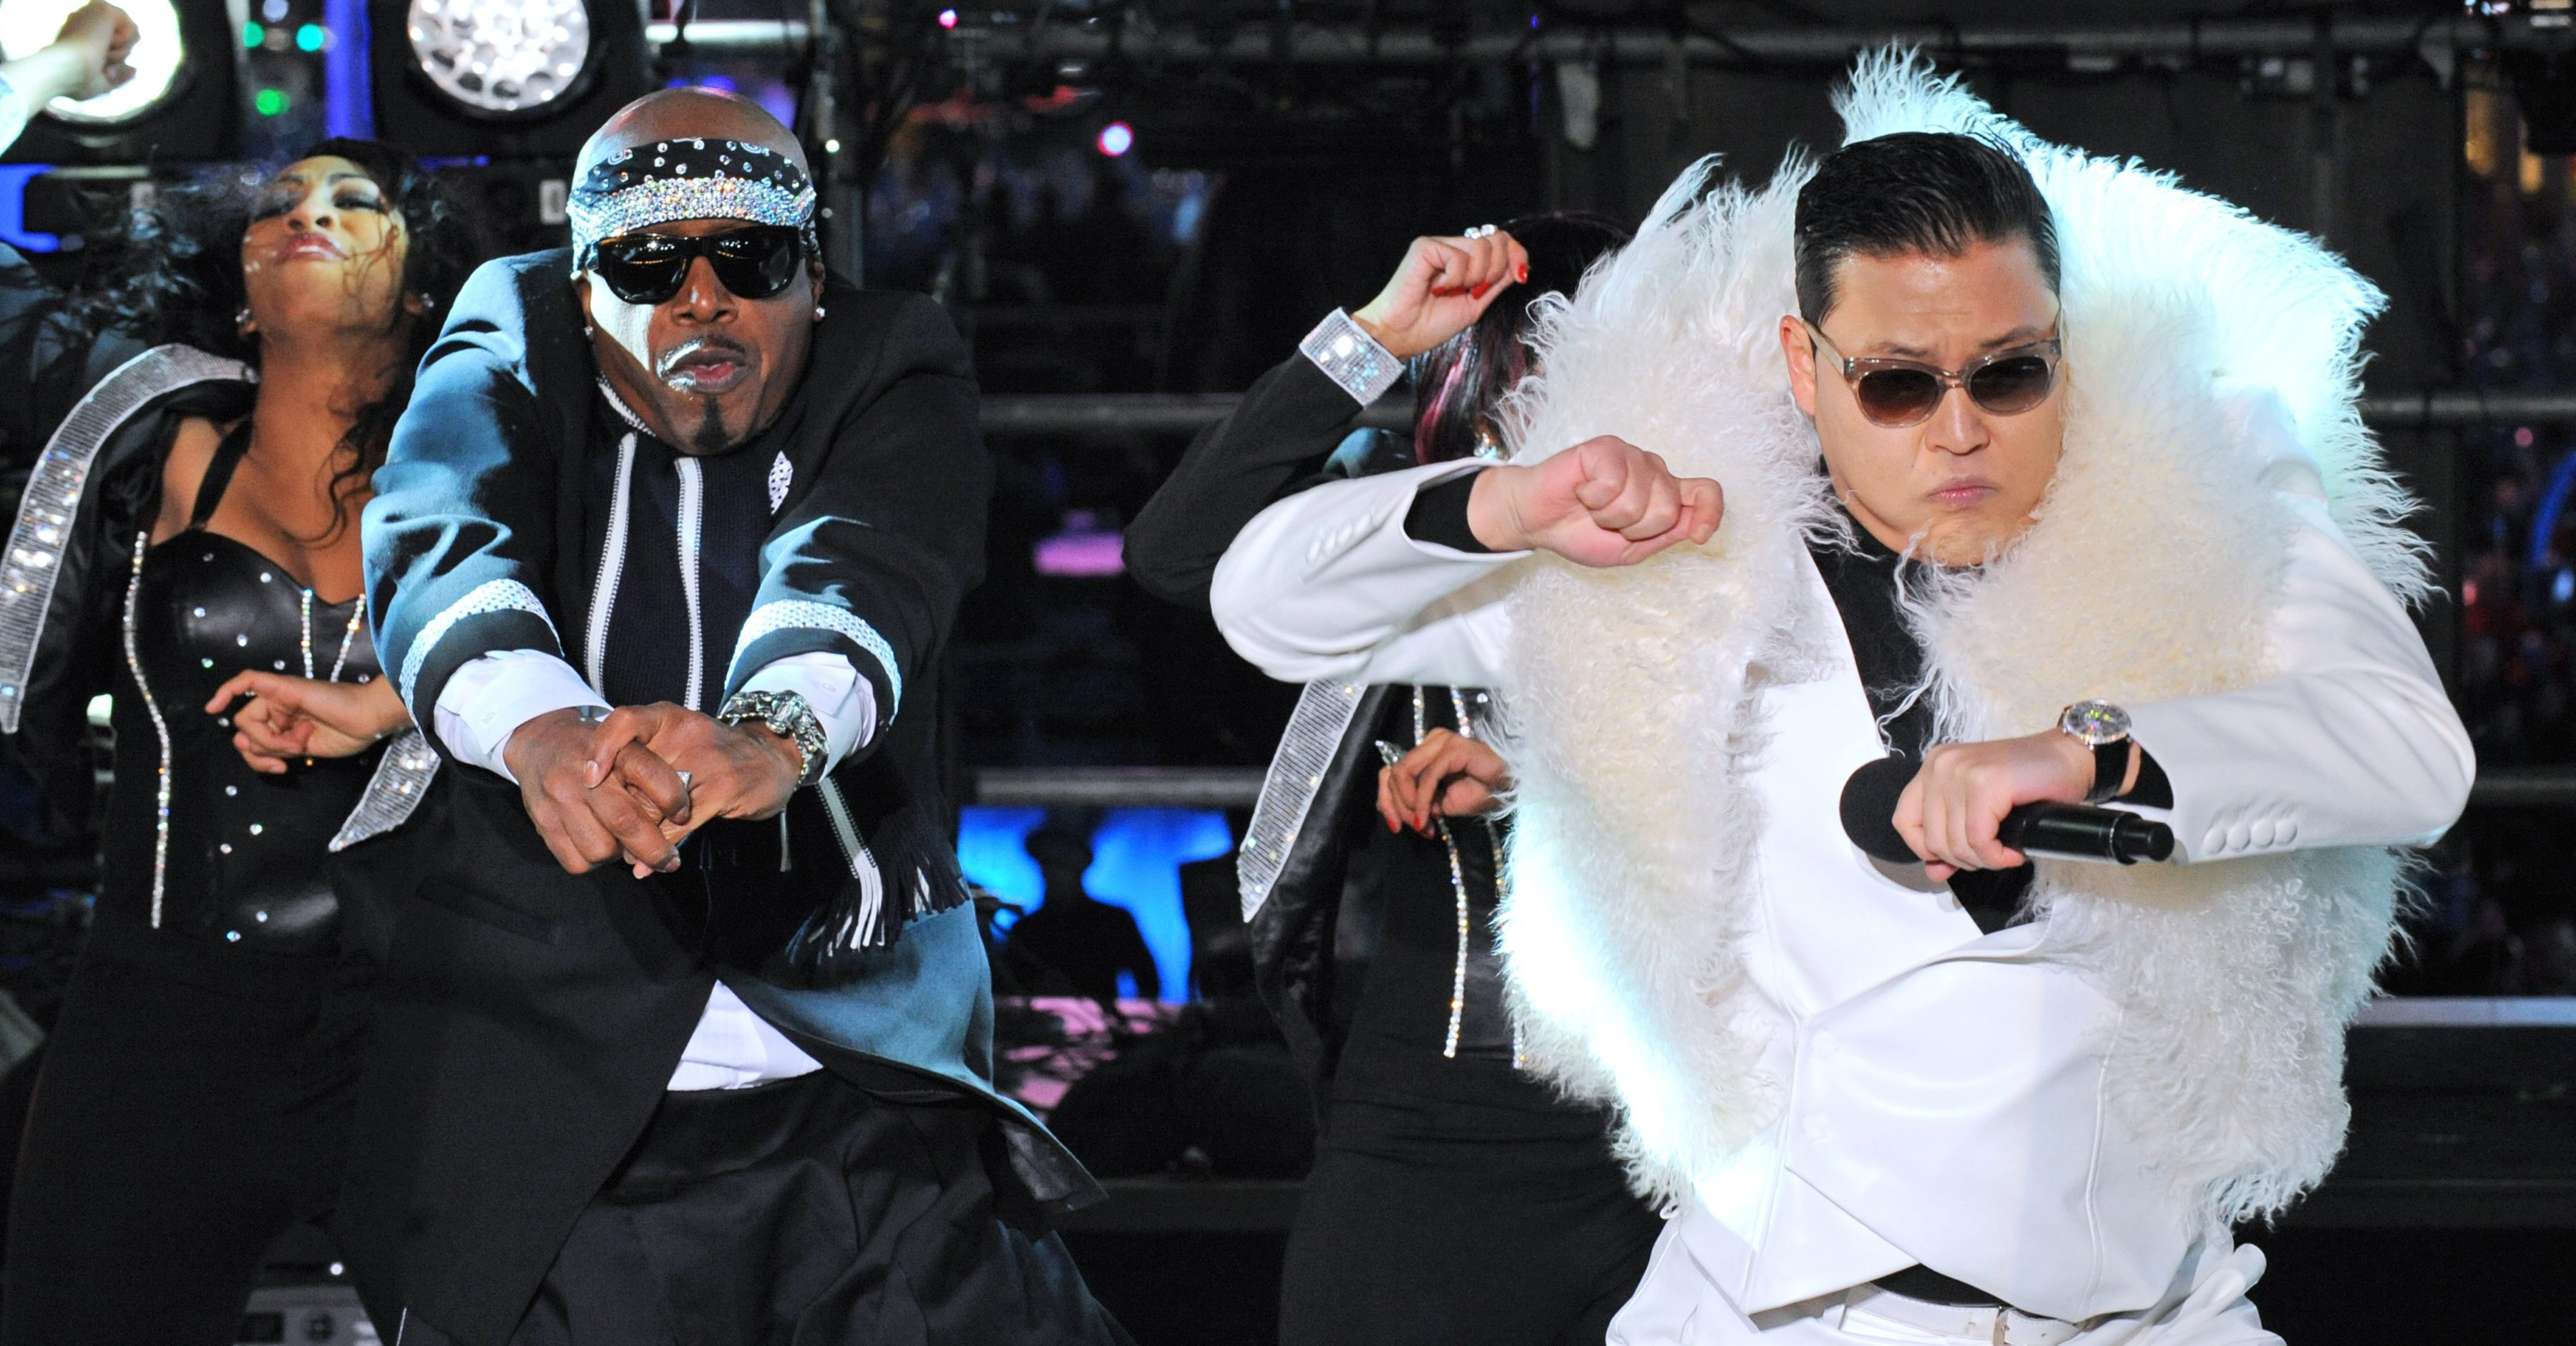 Psy and MC Hammer in Times Square New Year's Eve